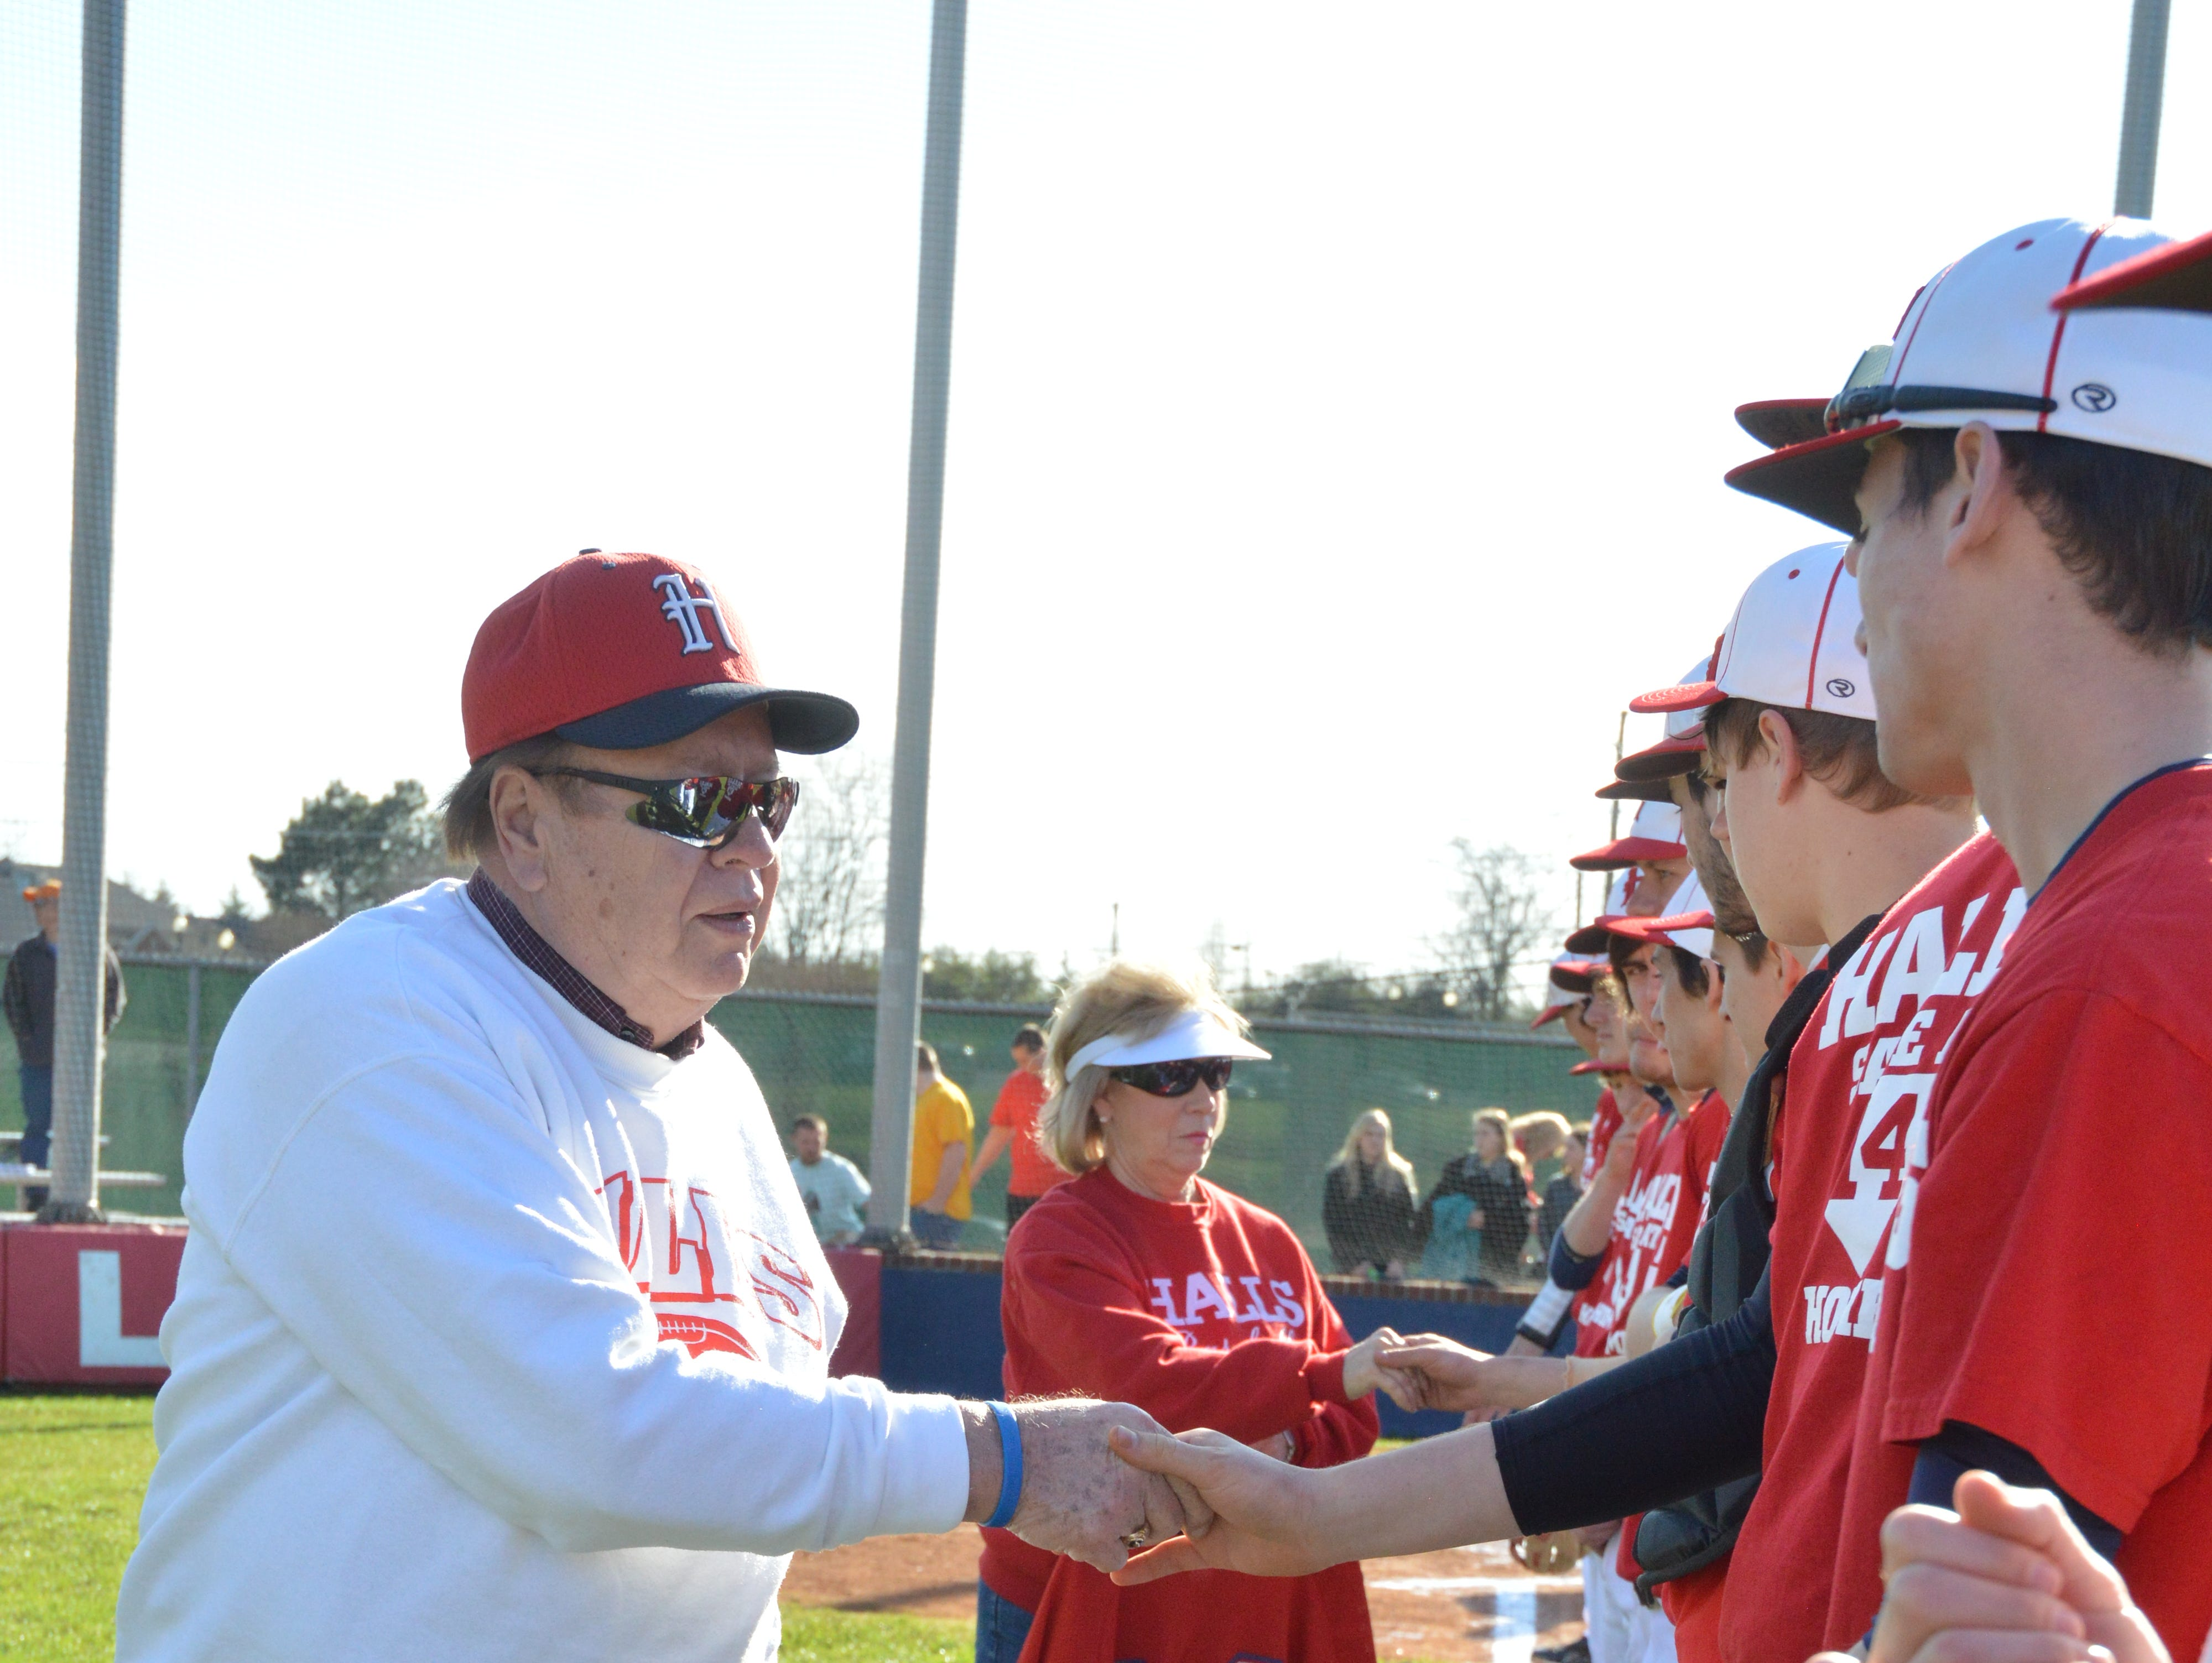 Hugh Newsom shakes hands with the Halls High baseball team prior to a game in 2013 against Central. Both teams honored Chris Newsom by wearing special jerseys.